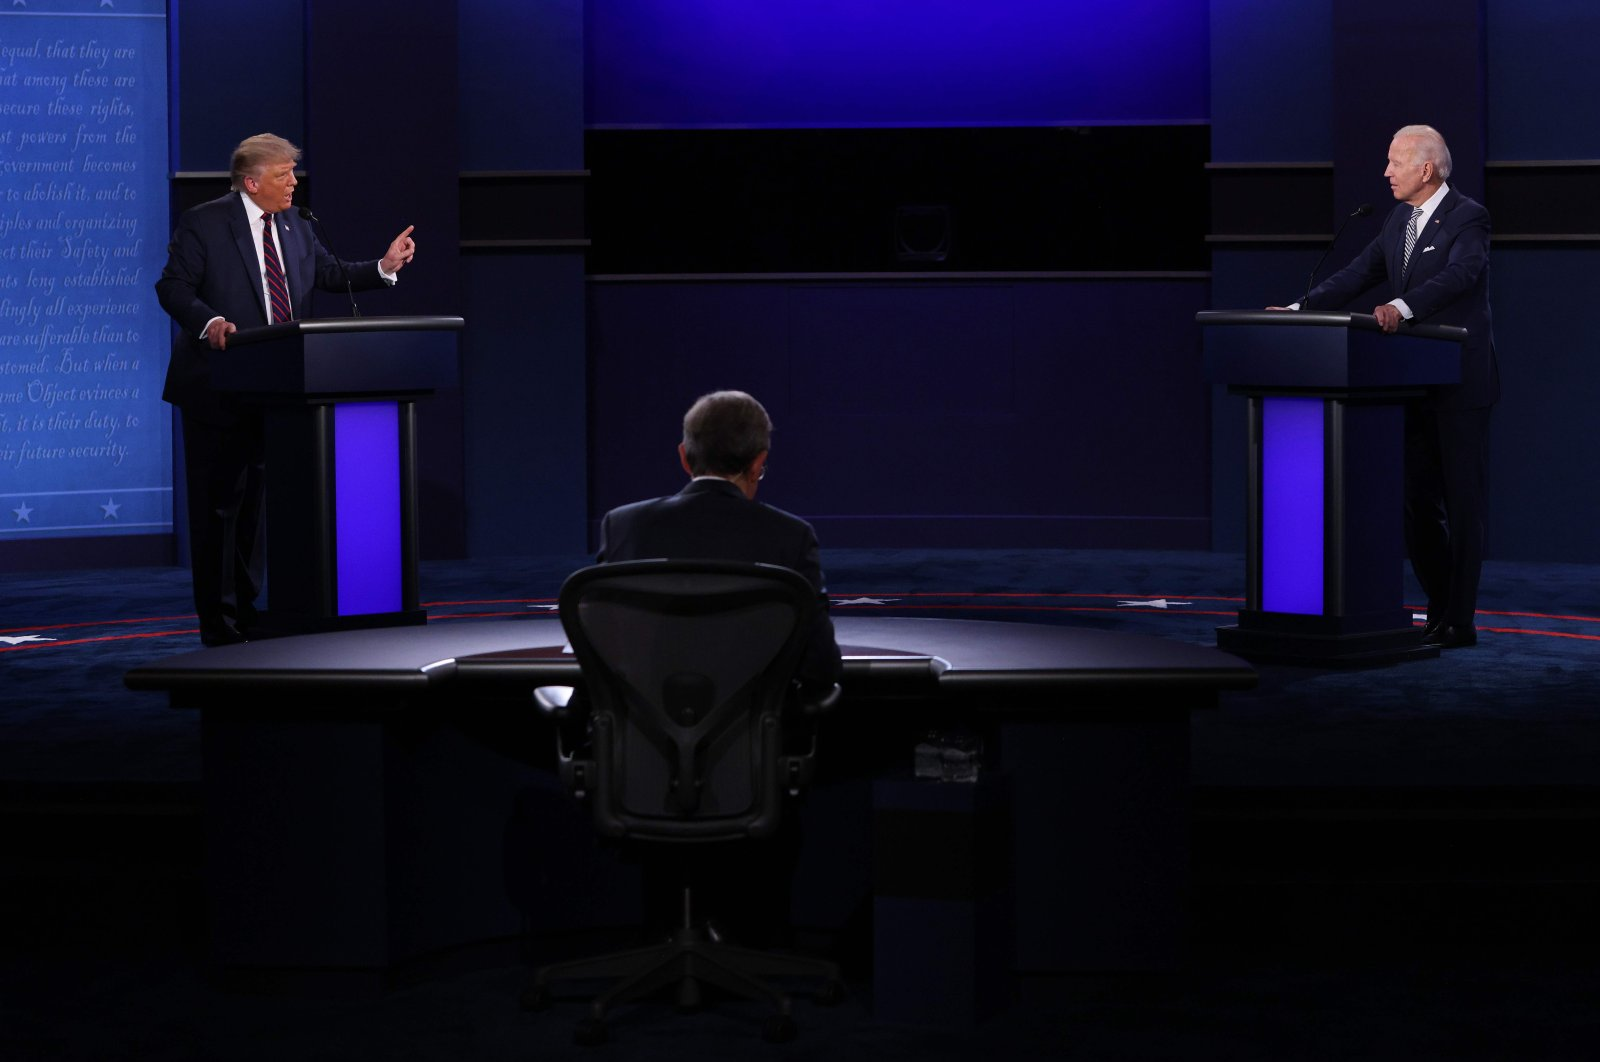 U.S. President Donald Trump and Democratic presidential nominee Joe Biden participate in the first presidential debate moderated by Fox News anchor Chris Wallace (C) at the Health Education Campus of Case Western Reserve University in Cleveland, Ohio, U.S., Sept. 29, 2020. (AFP Photo)